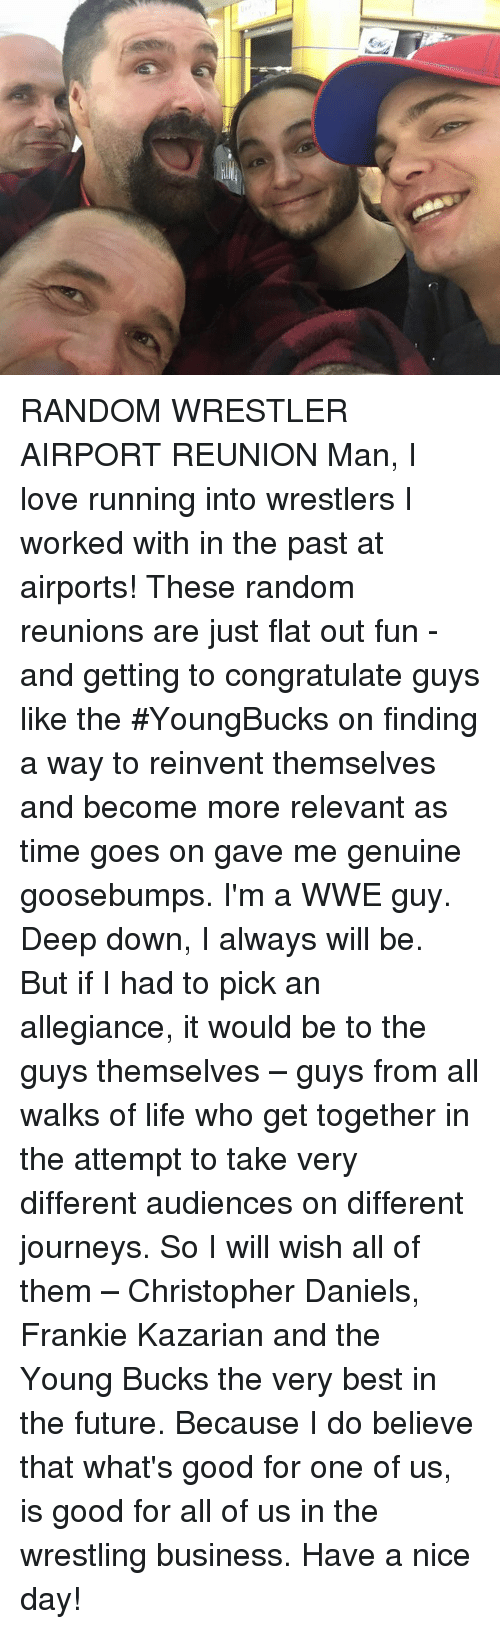 Franky: RANDOM WRESTLER AIRPORT REUNION Man, I love running into wrestlers I worked with in the past at airports! These random reunions are just flat out fun - and getting to congratulate guys like the #YoungBucks on finding a way to reinvent themselves and become more relevant as time goes on gave me genuine goosebumps.   I'm a WWE guy. Deep down, I always will be. But if I had to pick an allegiance, it would be to the guys themselves – guys from all walks of life who get together in the attempt to take very different audiences on different journeys. So I will wish all of them – Christopher Daniels, Frankie Kazarian and the Young Bucks the very best in the future. Because I do believe that what's good for one of us, is good for all of us in the wrestling business. Have a nice day!